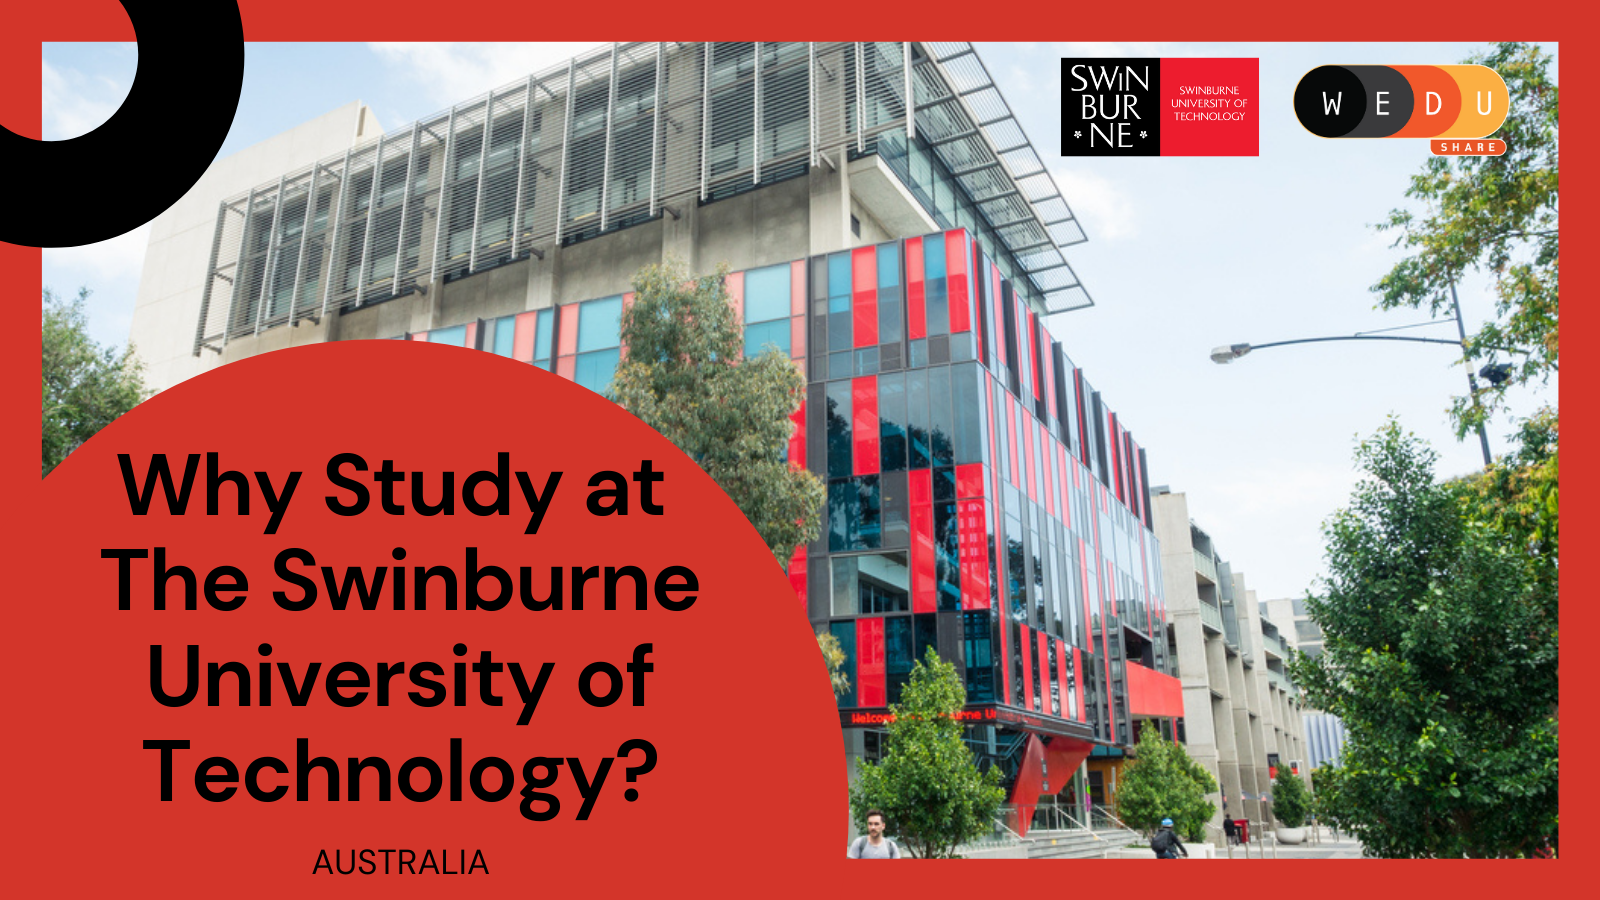 Why Should Study at Swinburne University of Technology in Australia?